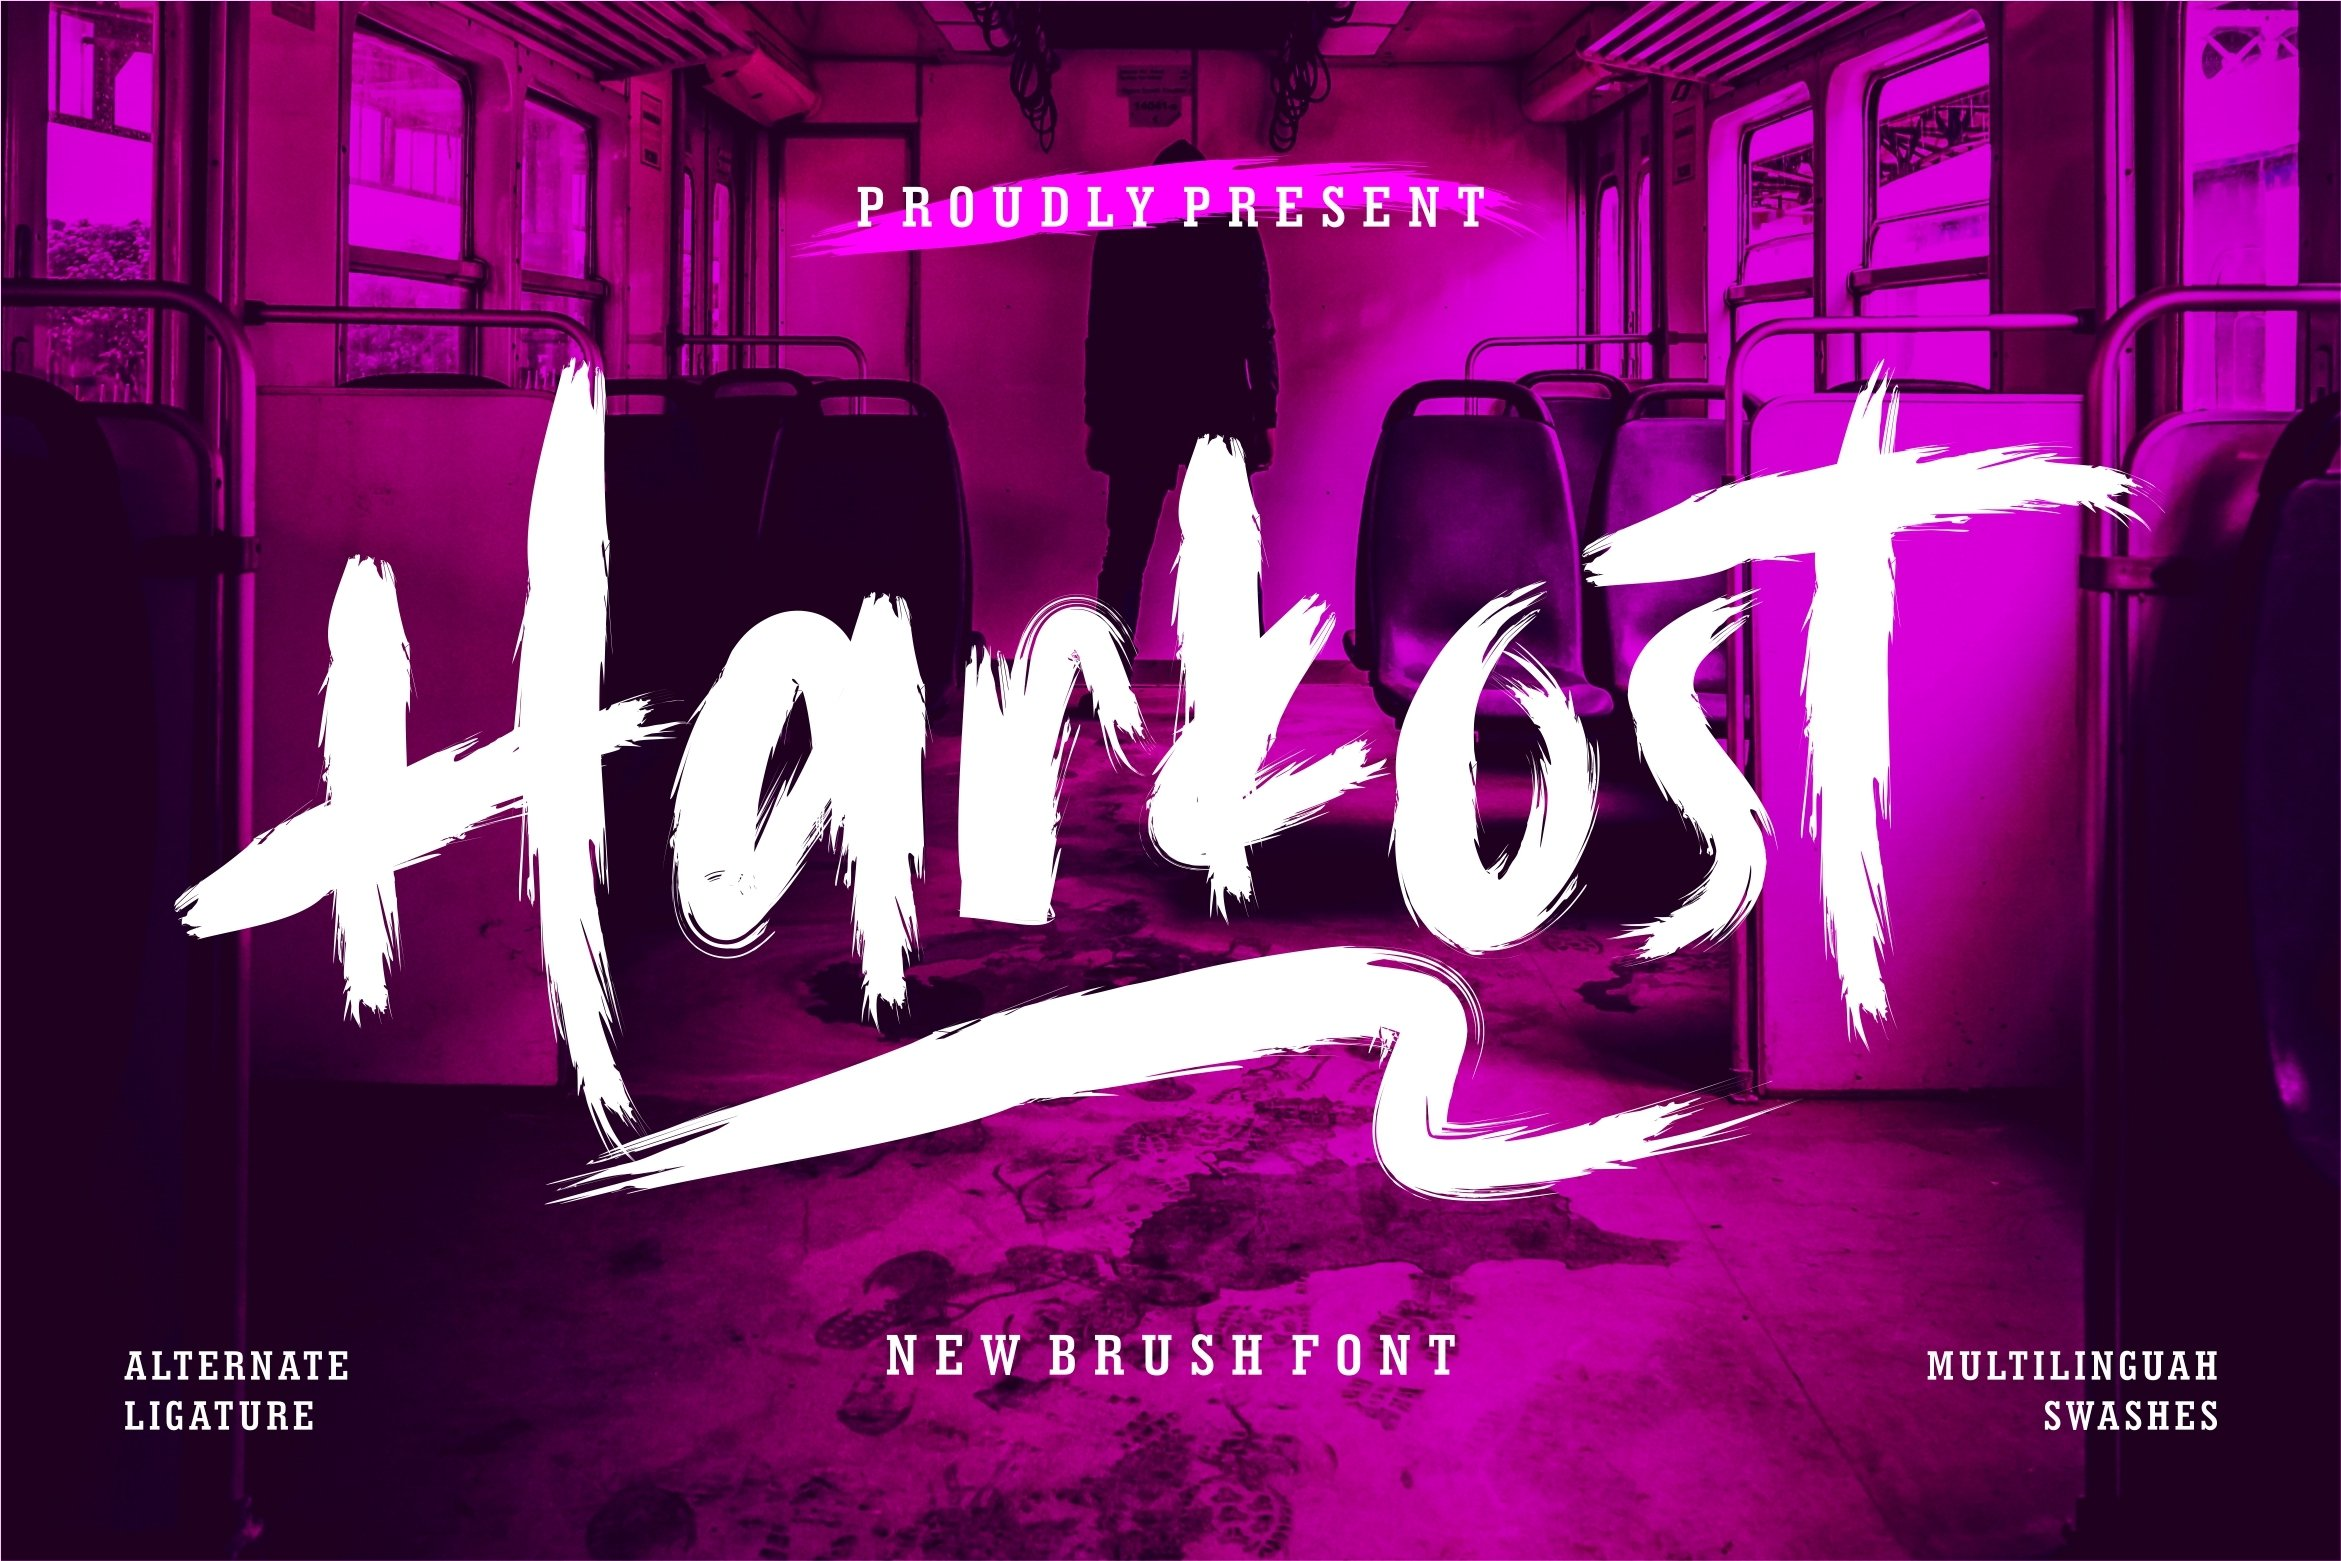 Harkost - New Brush Font example image 1